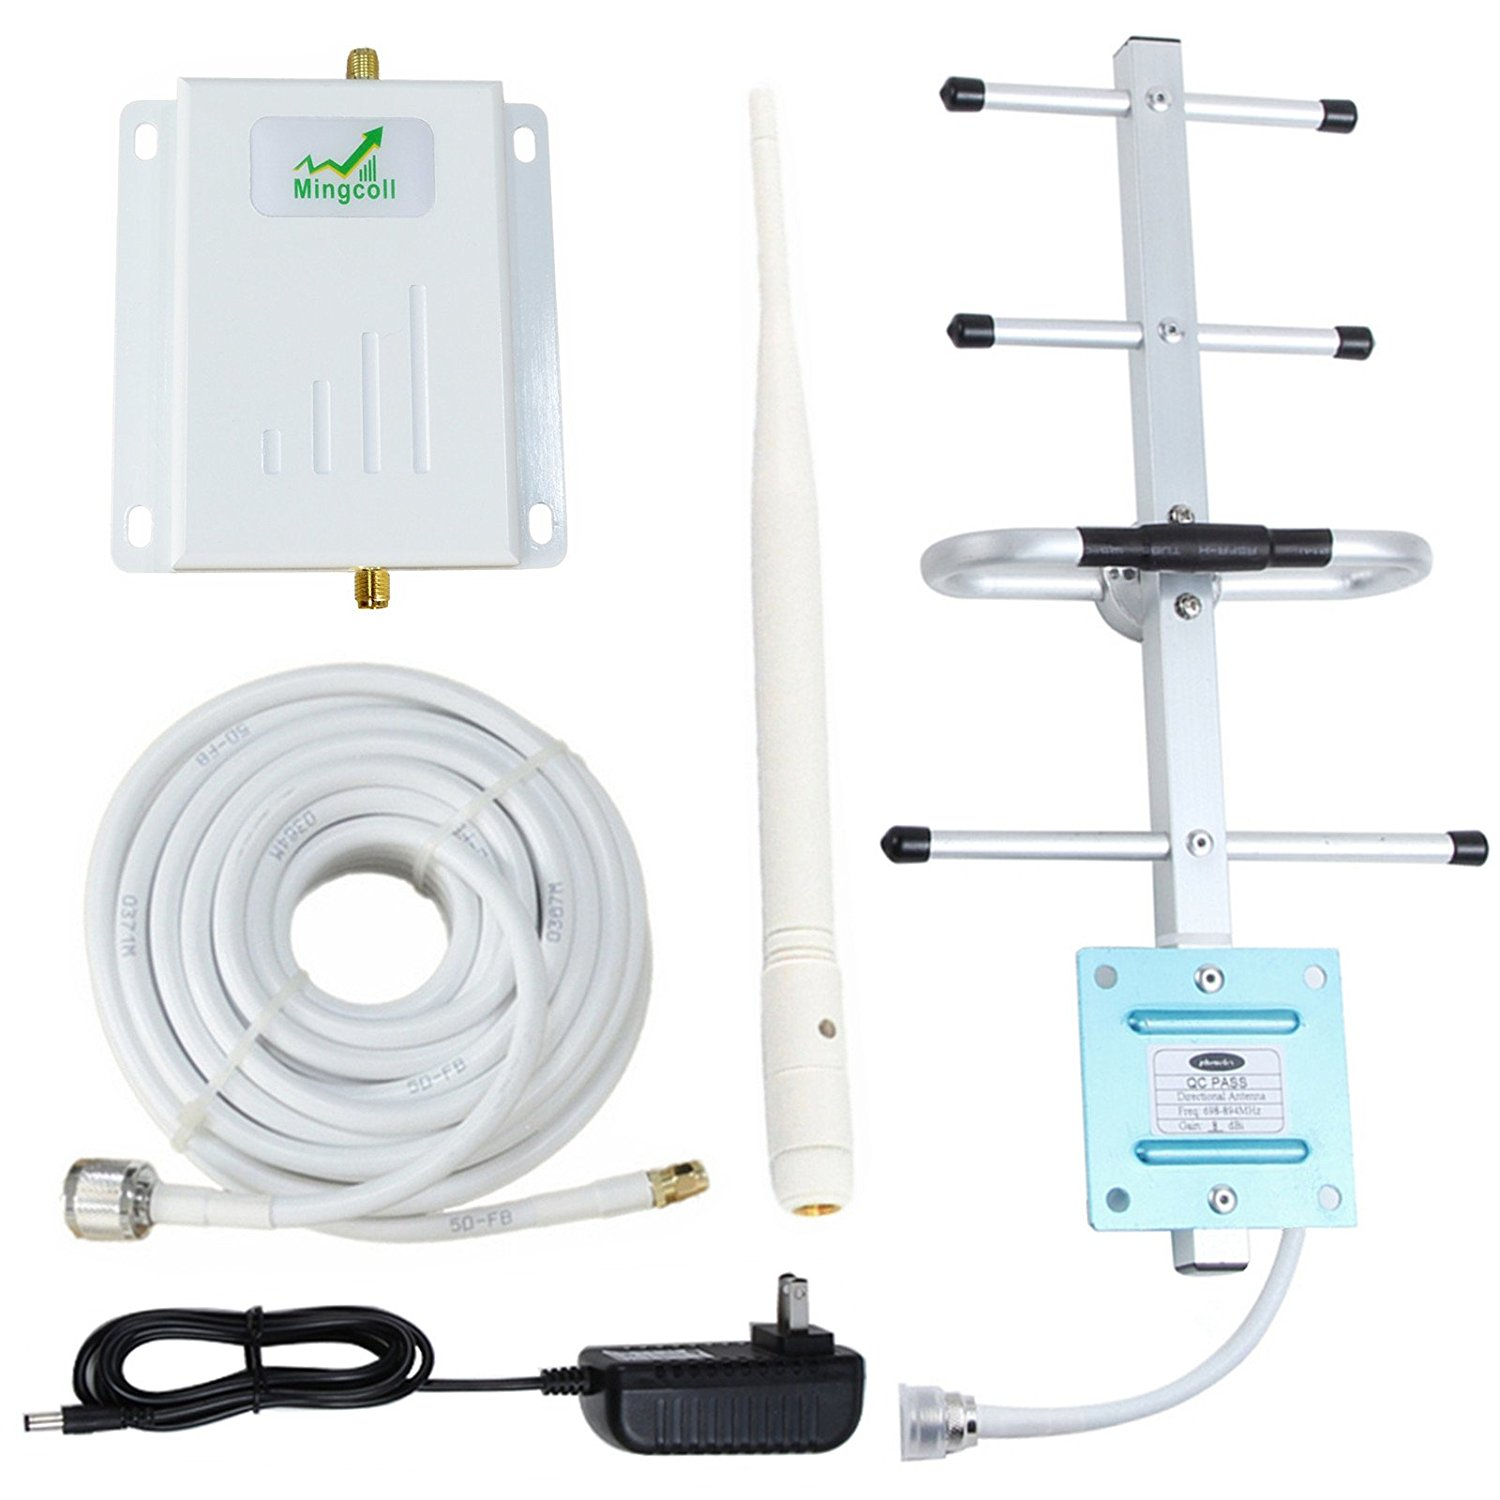 Verizon 4G Lte 700MHz Band 13 Cell Phone Signal Booster Mingcoll Cell Signal Repeater Booster for Home and Office (Yagi/whip(white-Verizon-Band 13-JXP))